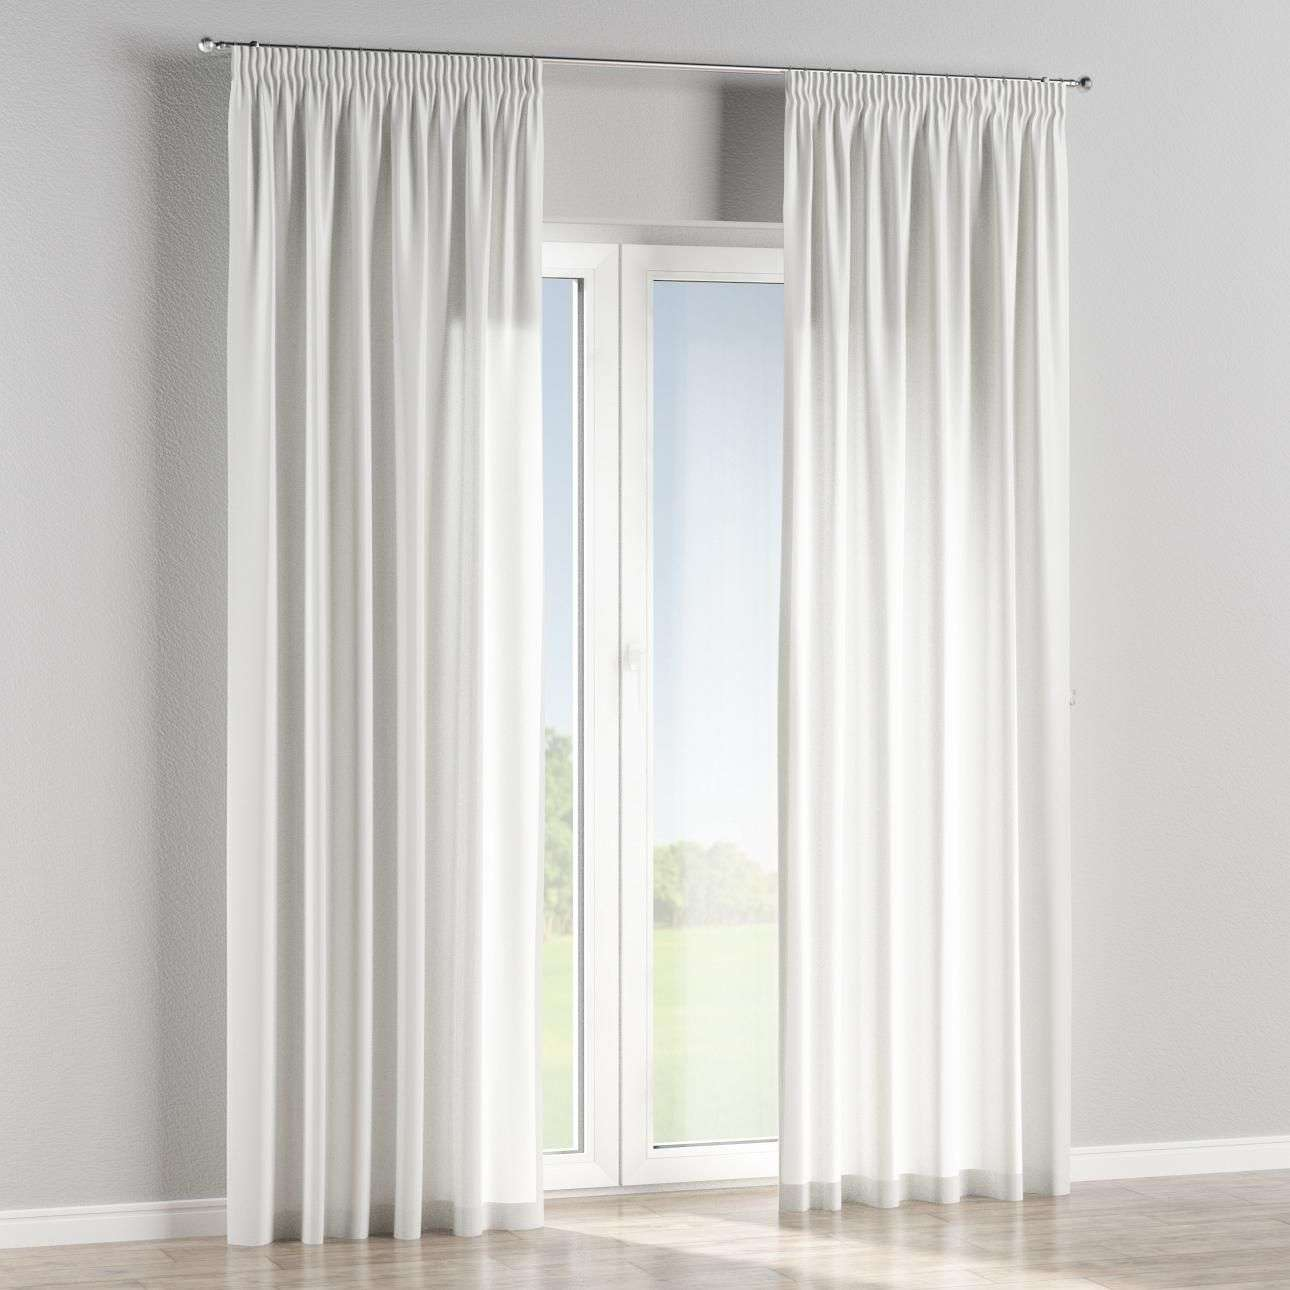 Pencil pleat curtains in collection Bristol, fabric: 125-15